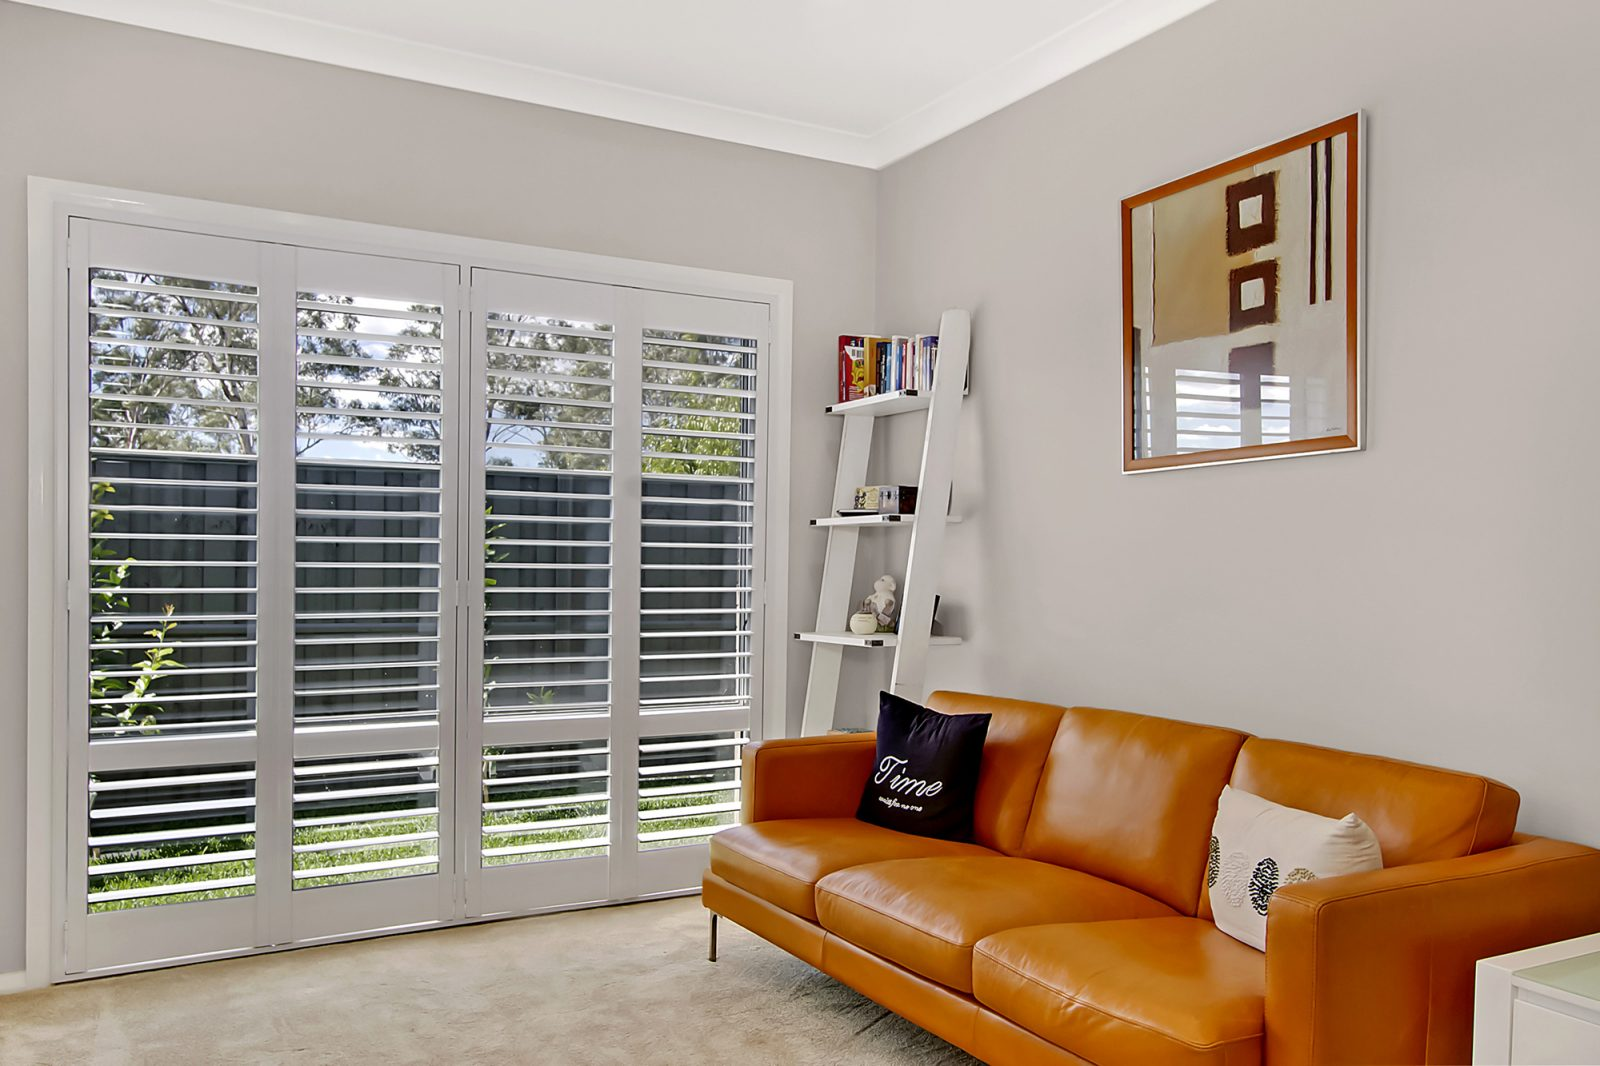 Modern Group plantation shutters - exterior window shutters & interior window shutters